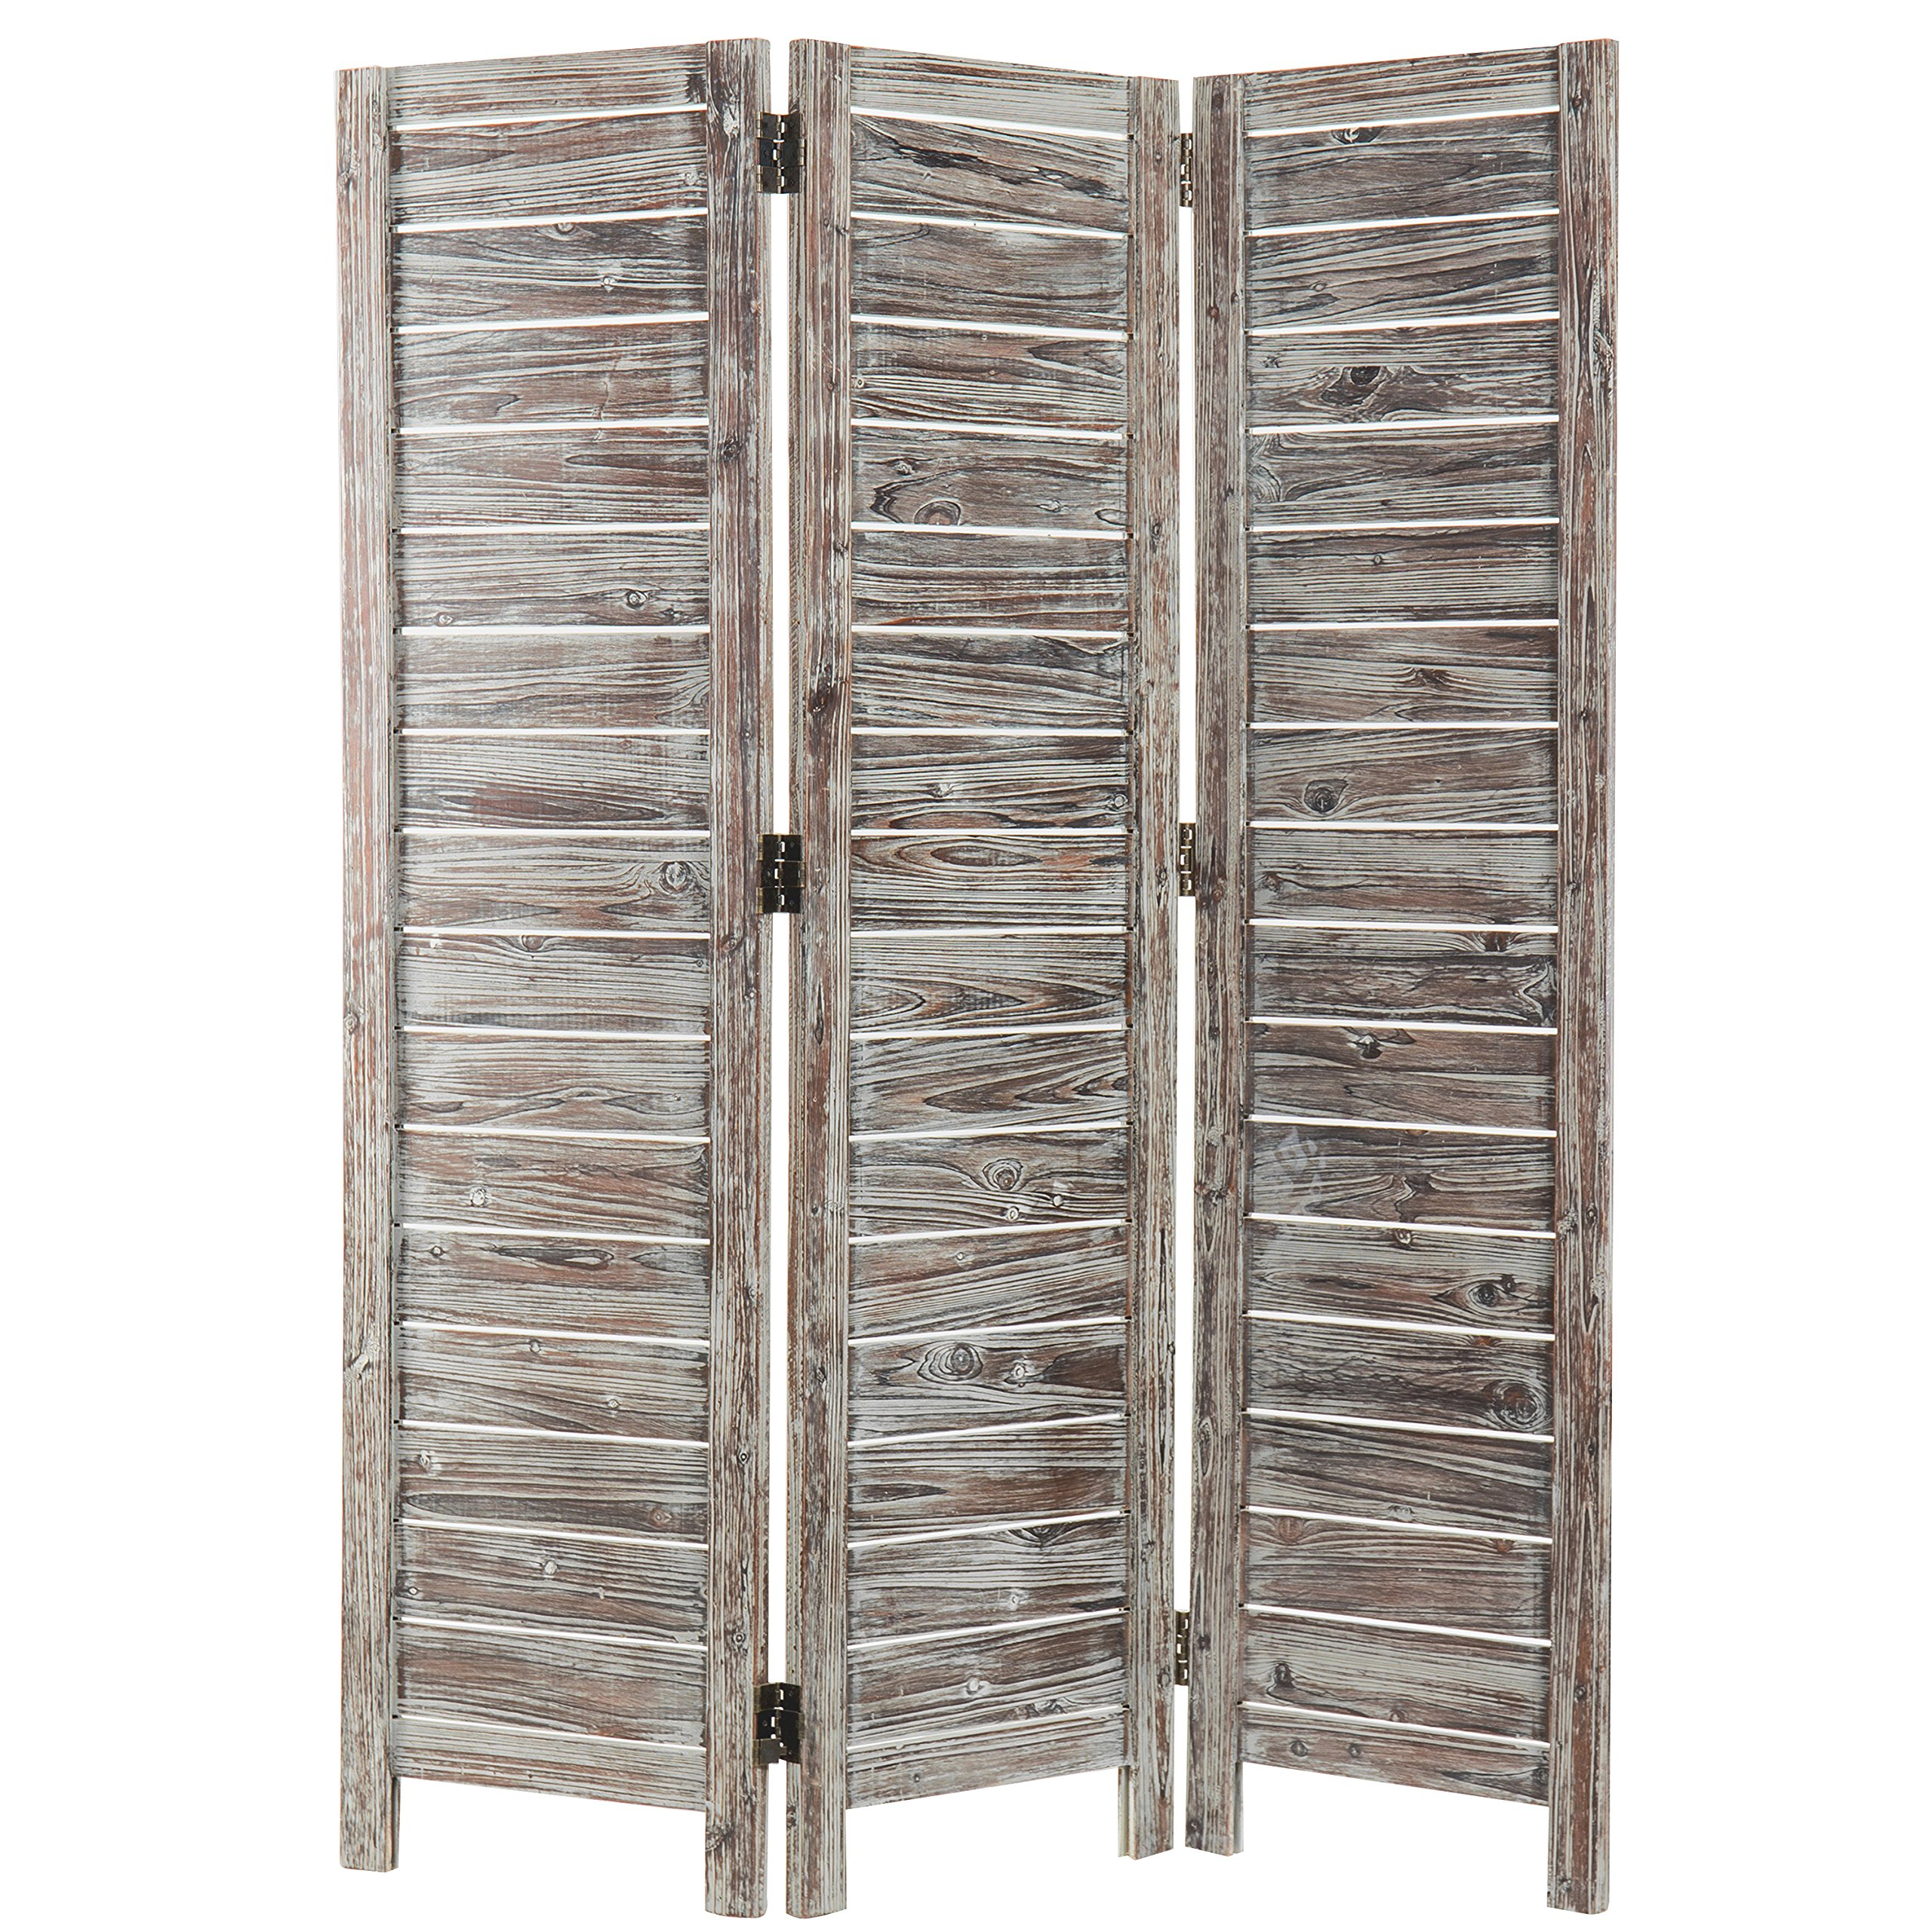 MyGift 6-Foot Barnwood Gray Shiplap-Style Room Divider with Dual-Action Hinges